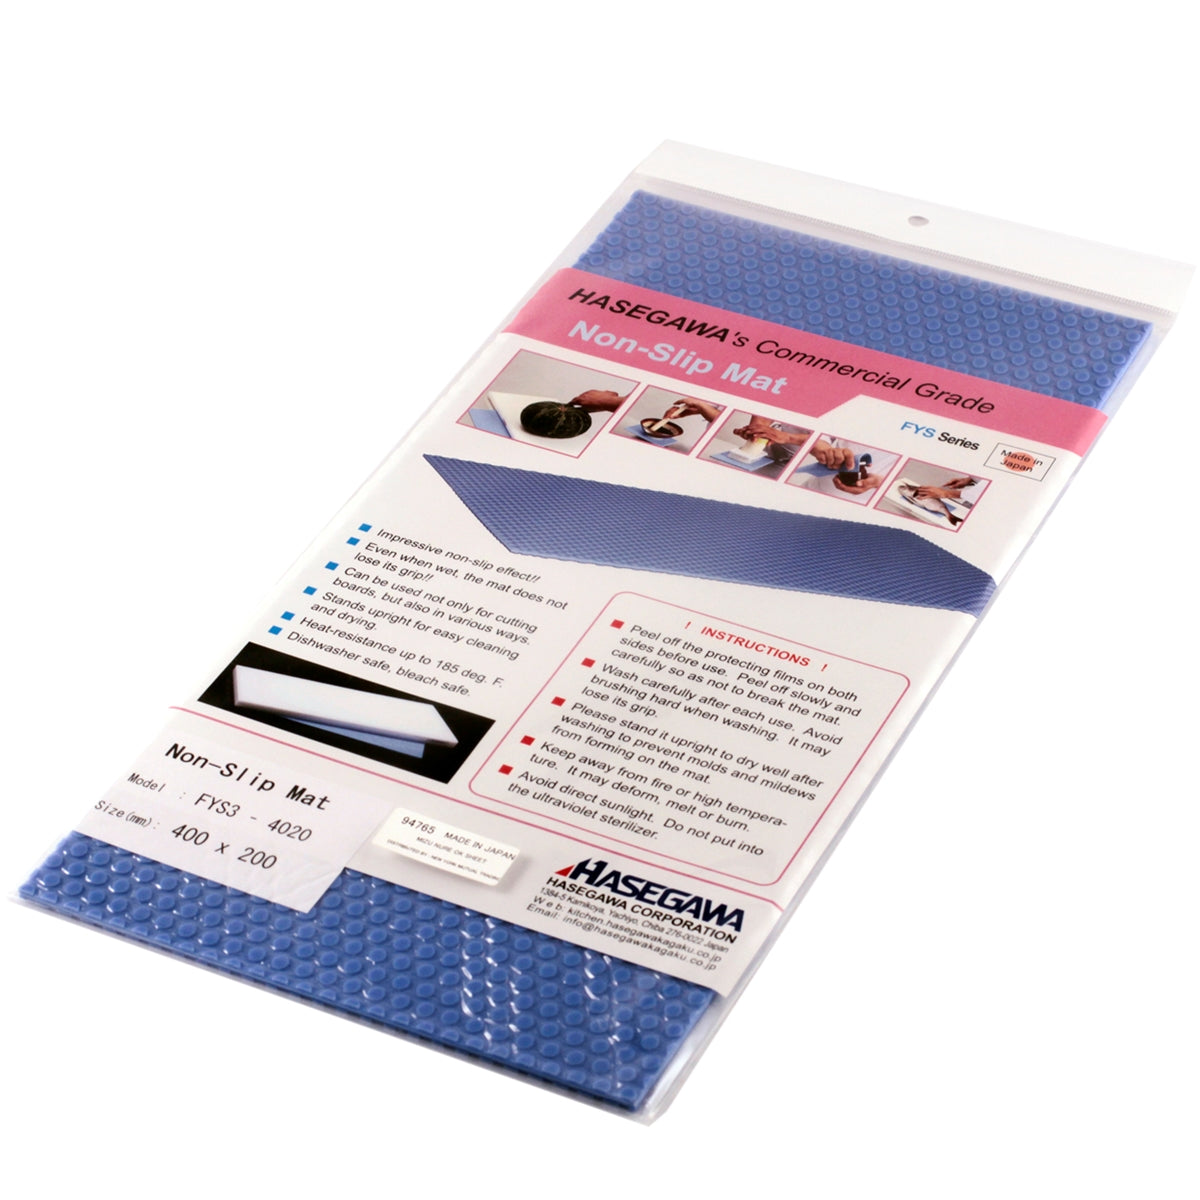 "Waterproof Non Slip Mat in Blue 15.7"" x 7.9"" (Large)"